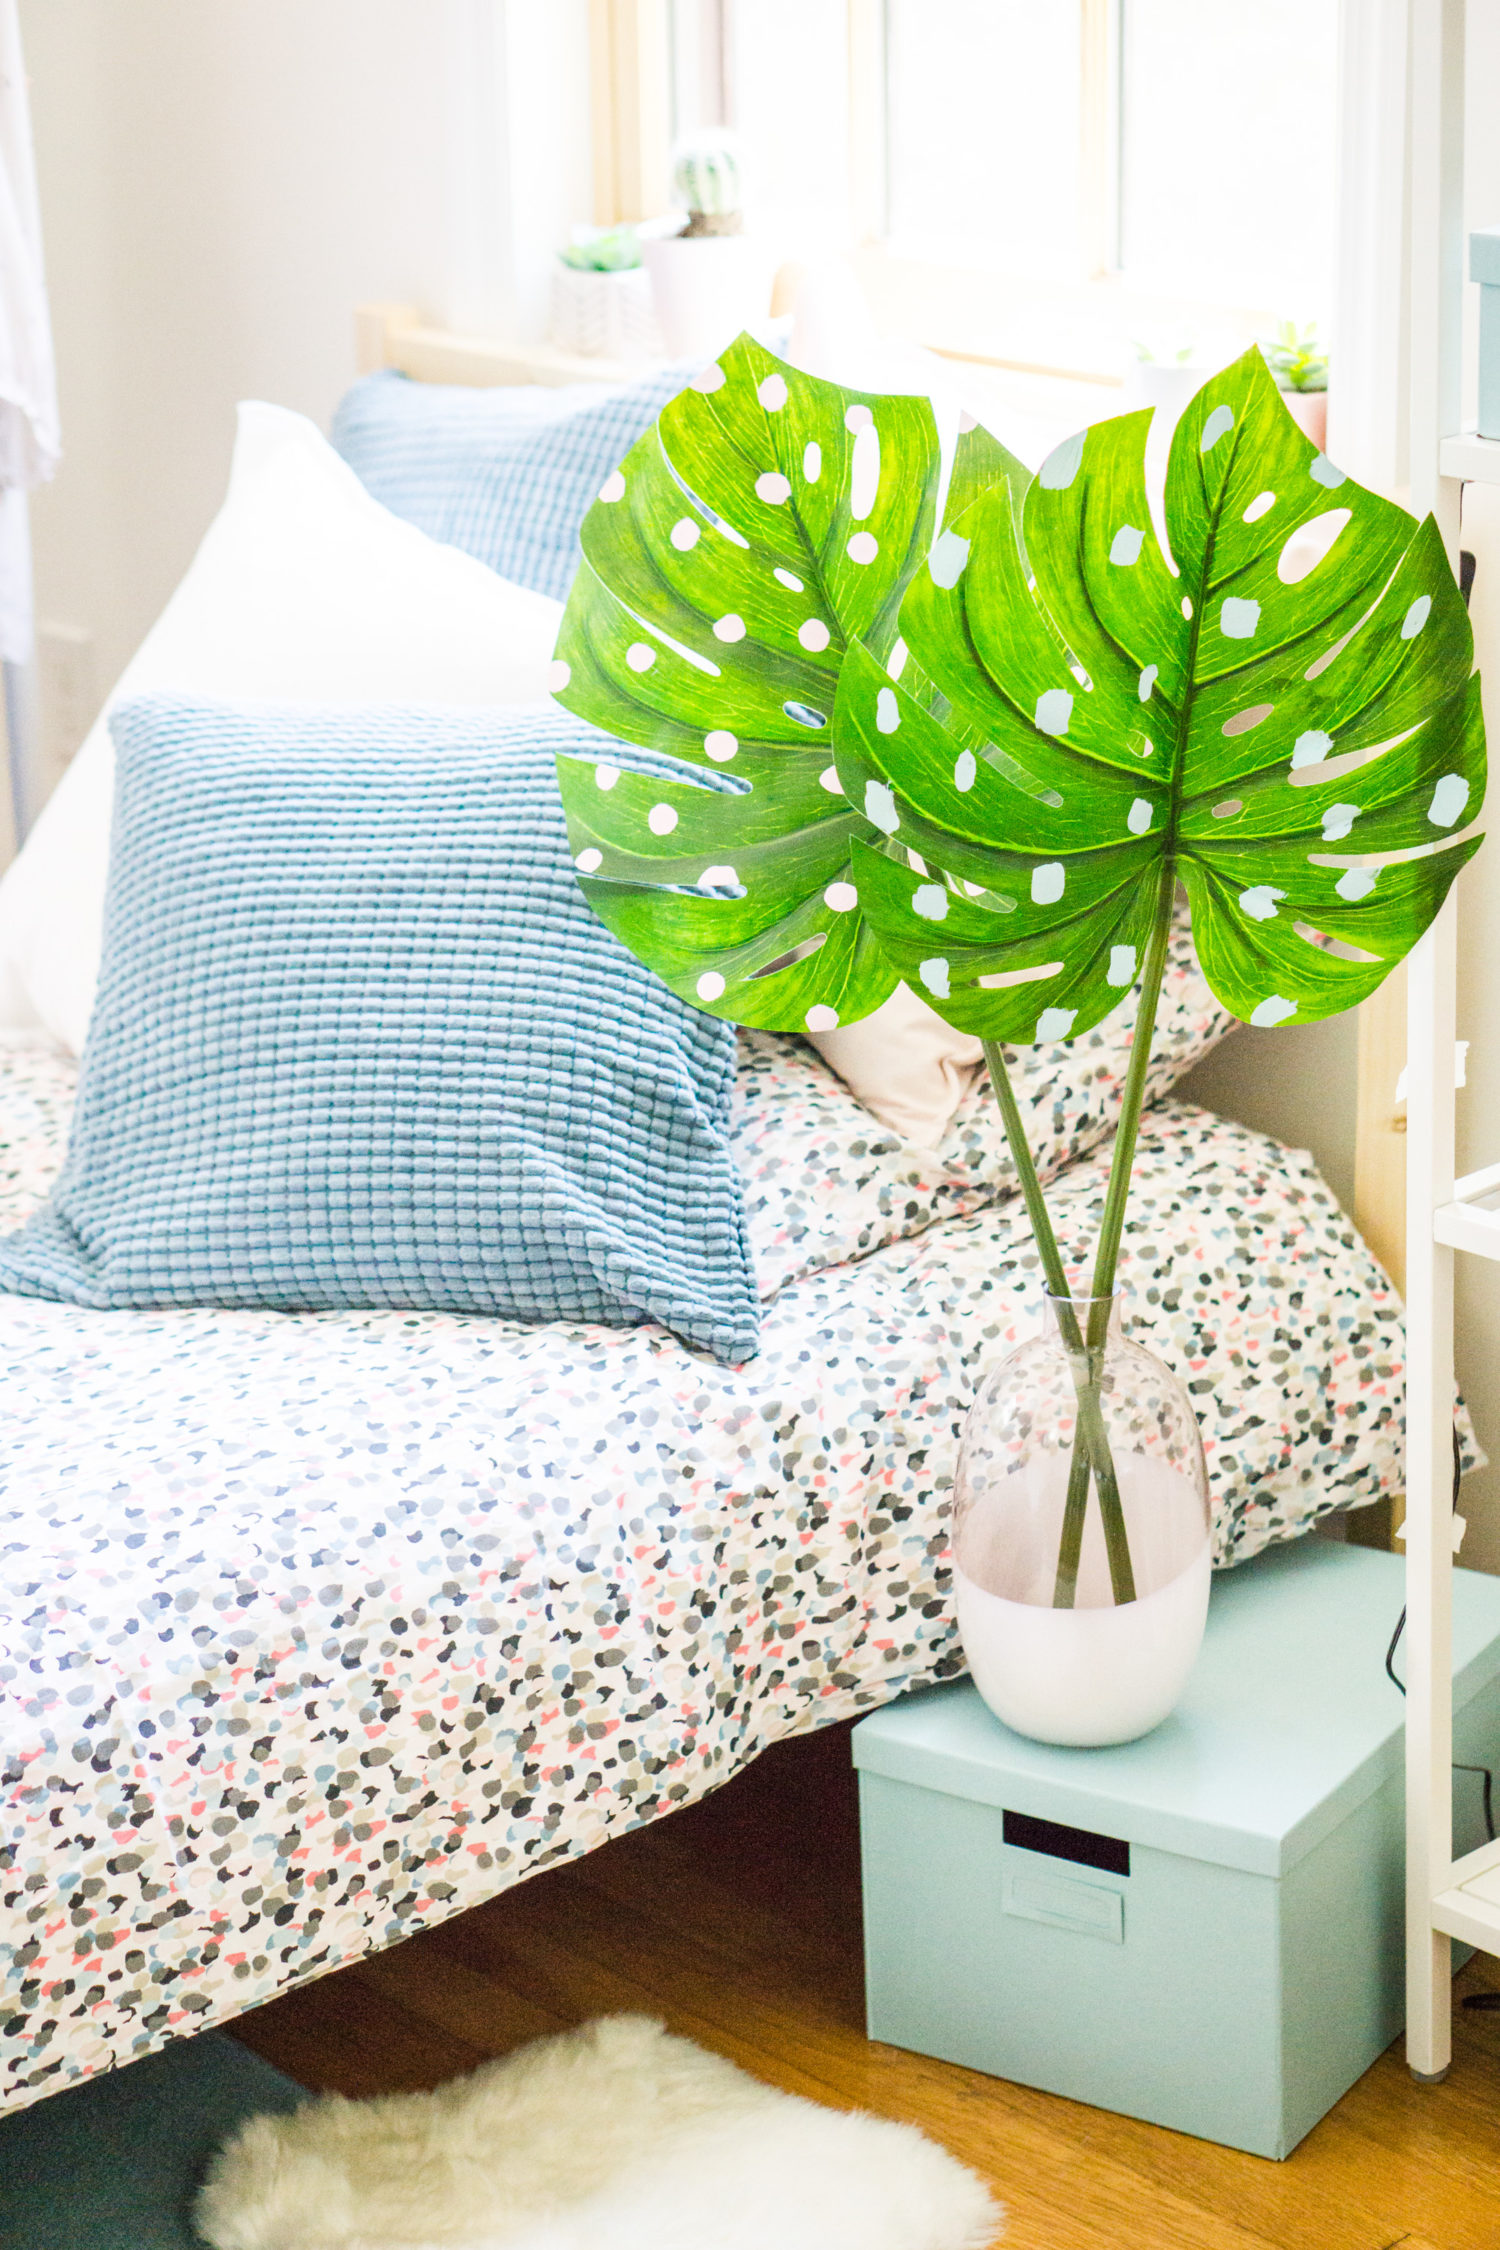 DIY dorm decor idea - pink polka dot palm leaves